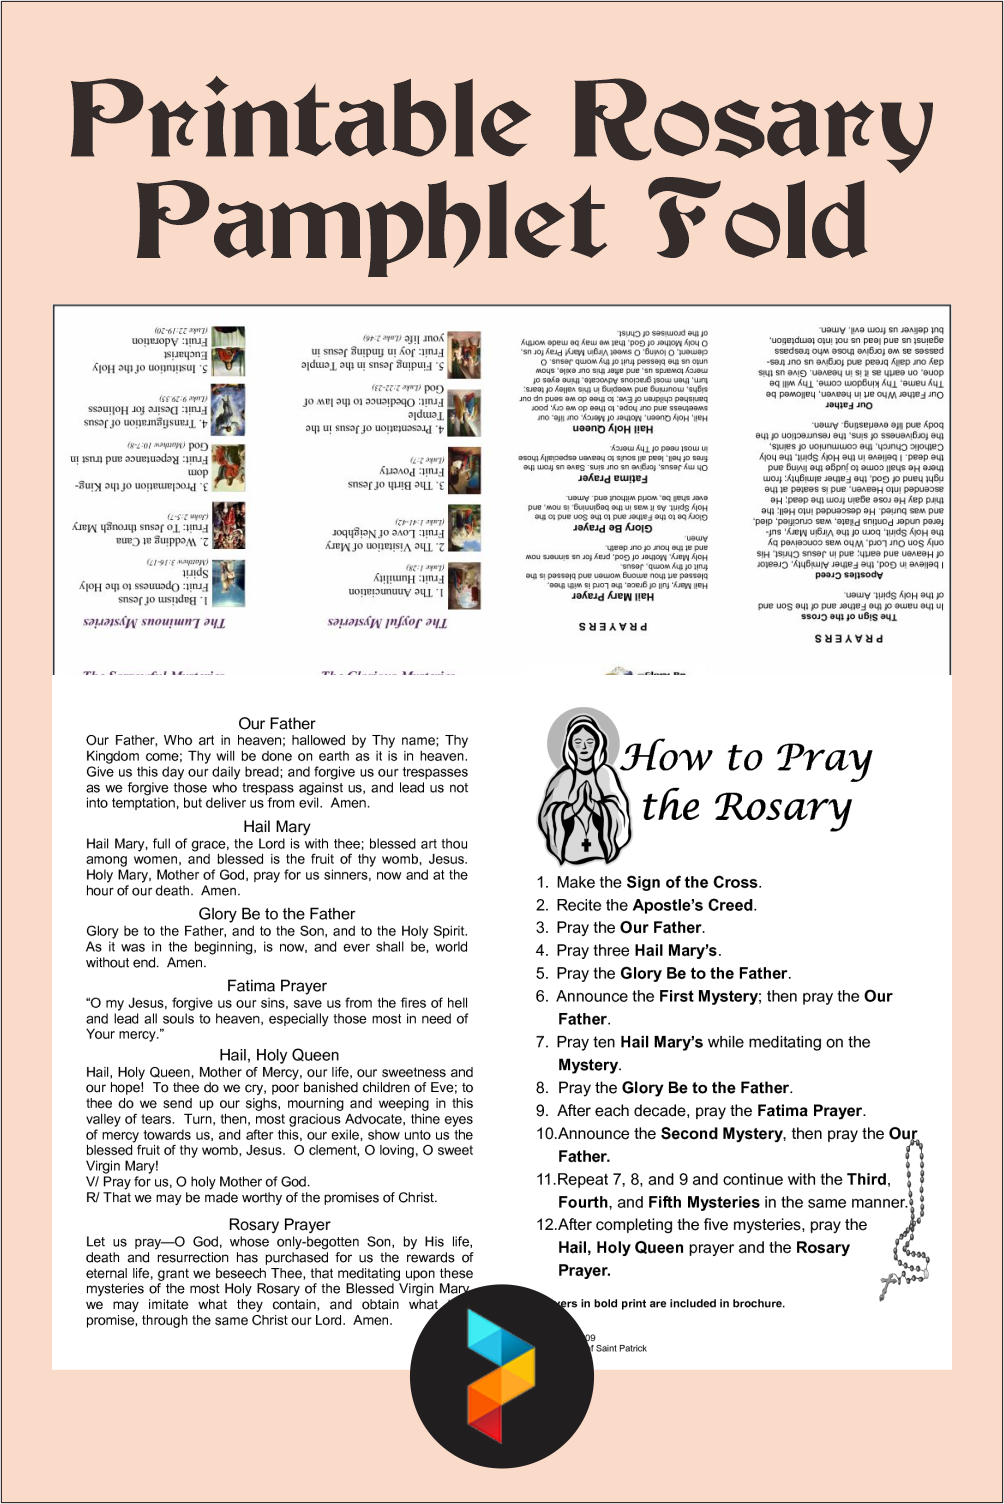 Printable Rosary Pamphlet Fold